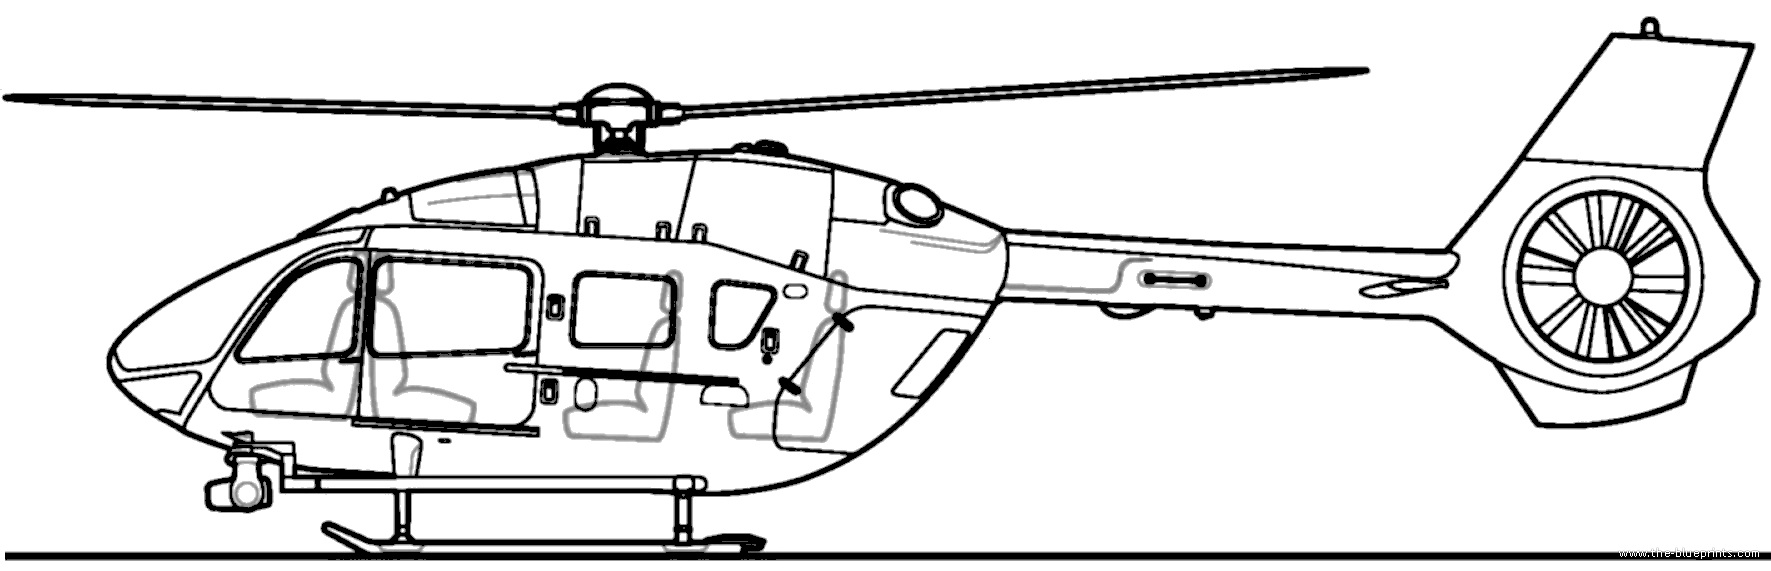 blueprints helicopters helicopters a b airbus helicopters ec145 t2